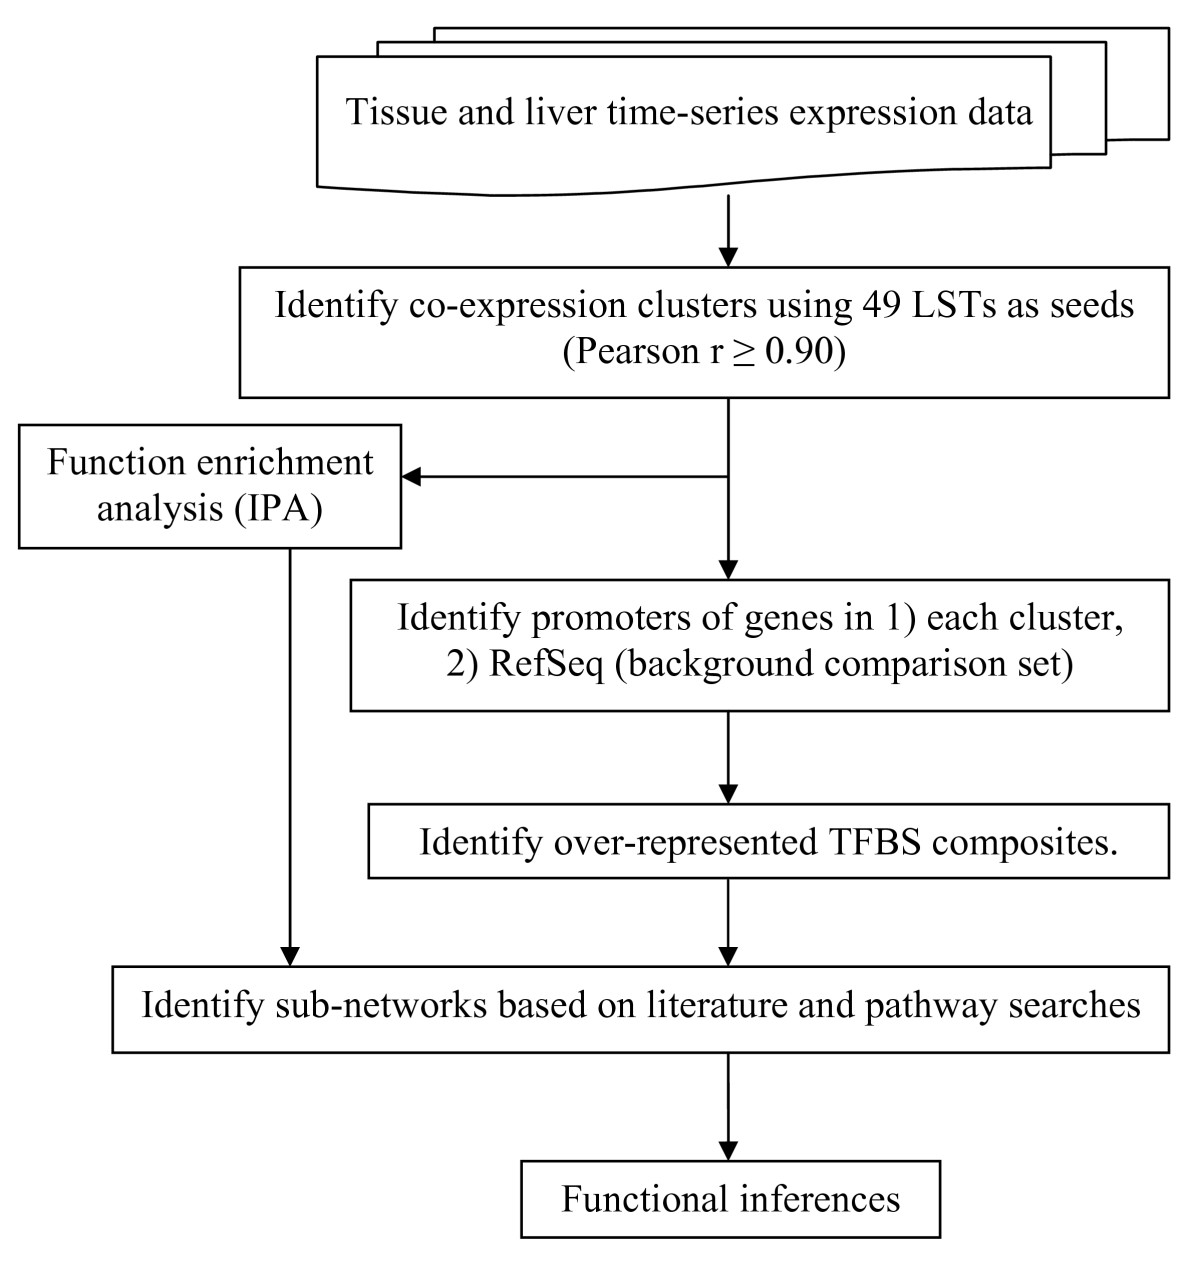 https://static-content.springer.com/image/art%3A10.1186%2F1471-2164-11-161/MediaObjects/12864_2009_Article_2755_Fig1_HTML.jpg